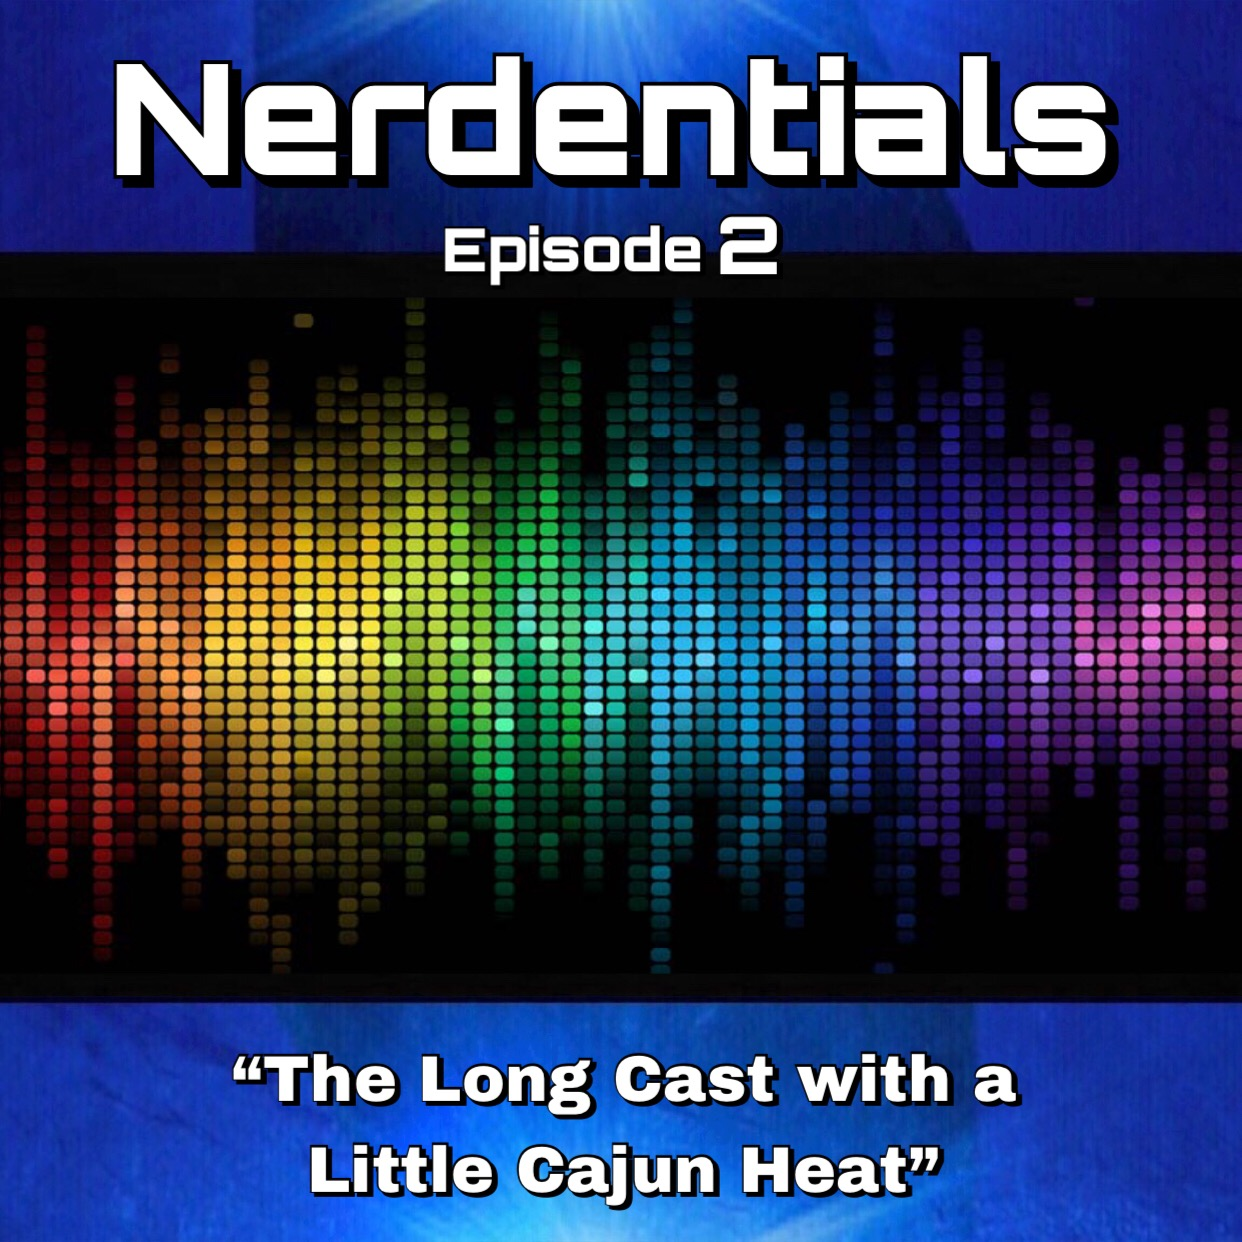 - Sit back for a long cast this time around as our friend CauCajun Saint from Geekologist Radio joins us in our discussions!First up its:Movie Matters with Logan and Beauty and the Beasts reviews.Then We Hit up TV Talk and take a look at the Netflix Original Series Iron Fist and our first impressions. Then we Finish the last half of the cast with:Gaming Bits. We dive into each guys game of the week with The Legend of Zelda: Breath of the Wild, Final Fantasy 15 and Mass Effect Andromeda then we finally wrap it all up withWhat's Coming Up: We peel back the layers and details on a couple sequels: Injustice 2 and Middle Earth: Shadows of War and a little bit of Destiny 2 Chatter.